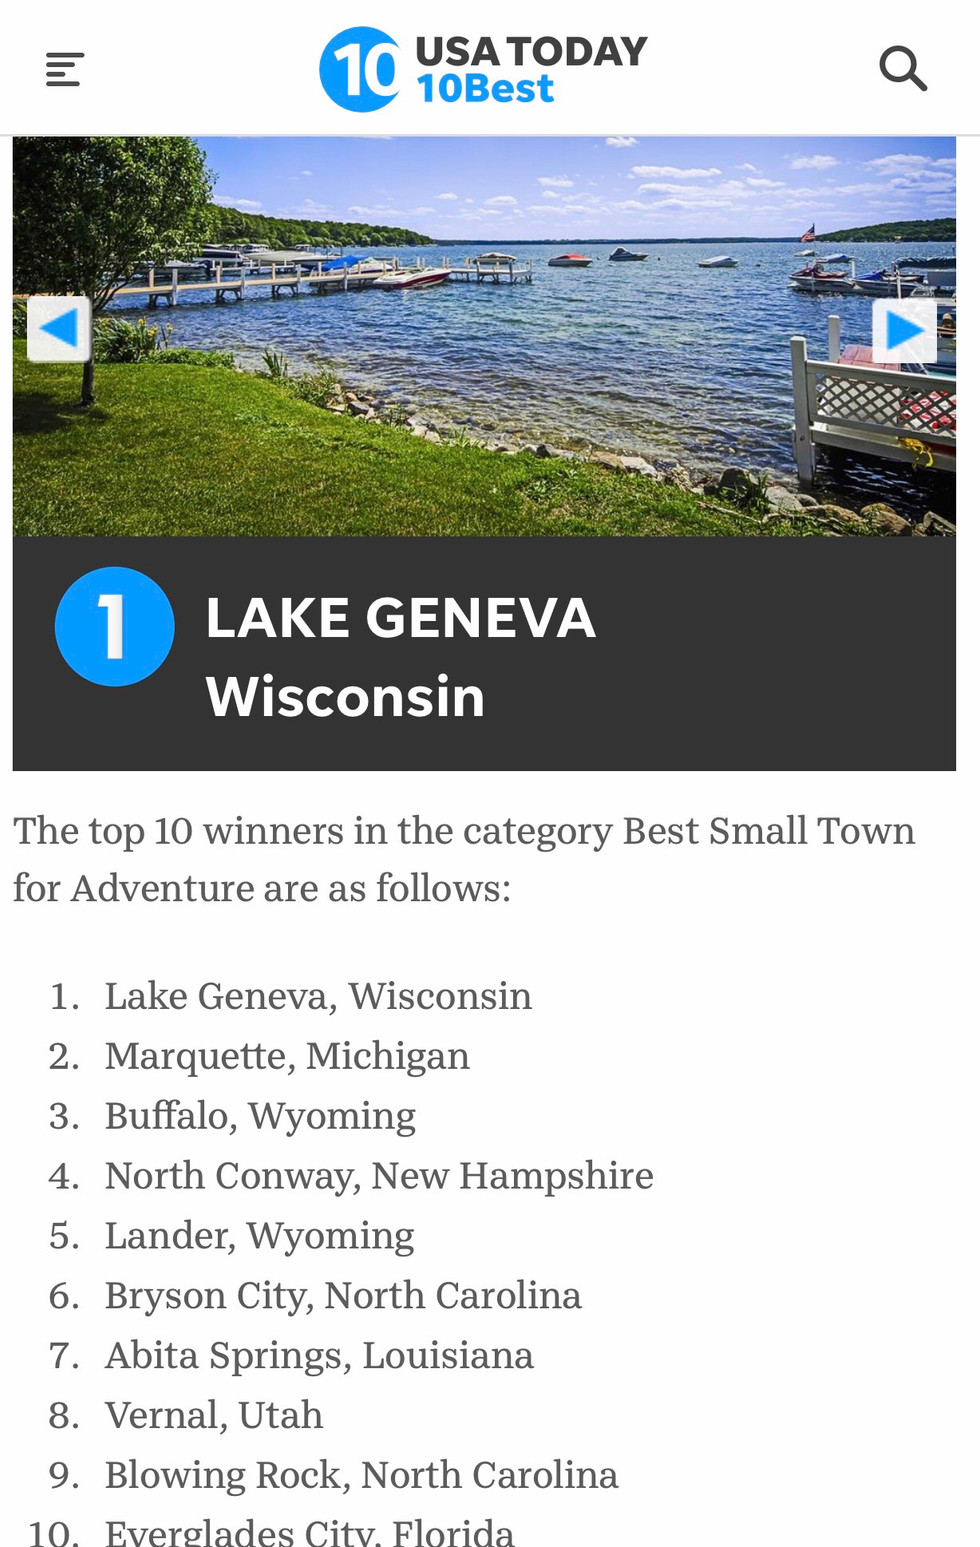 USA Today Votes Lake Geneva the BEST Small Town for Adventure